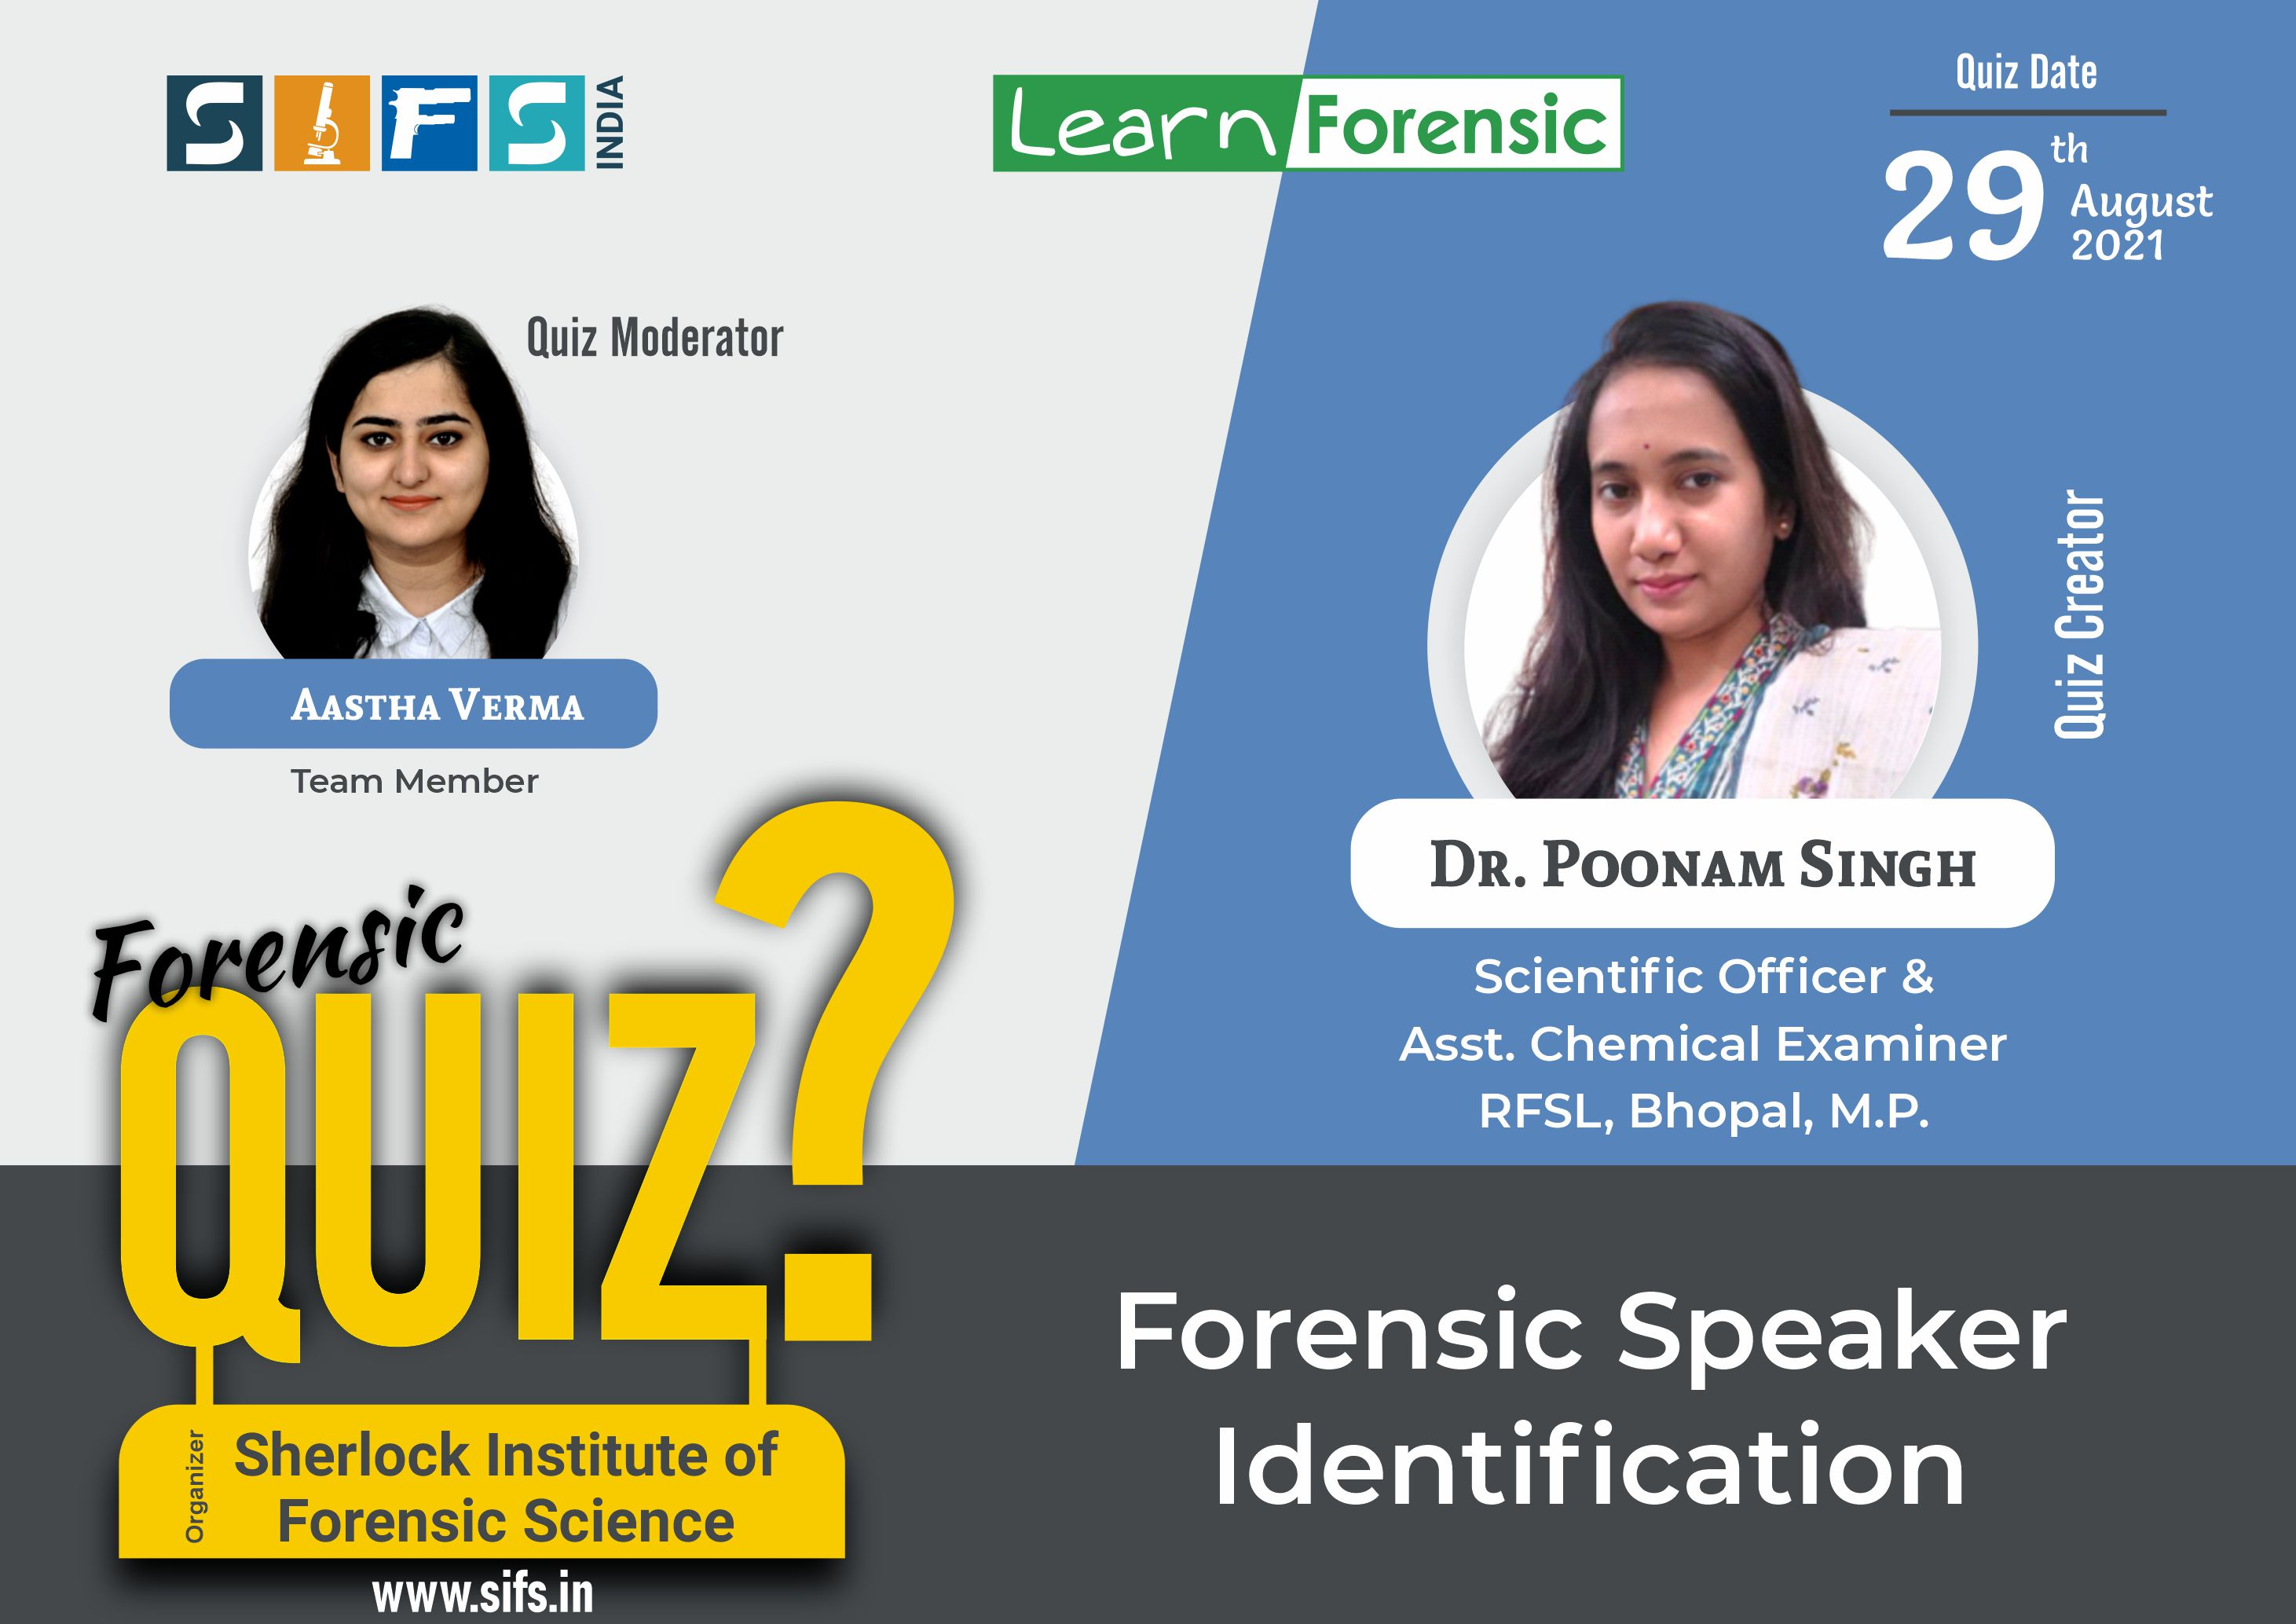 Forensic Speaker Identification - Answers